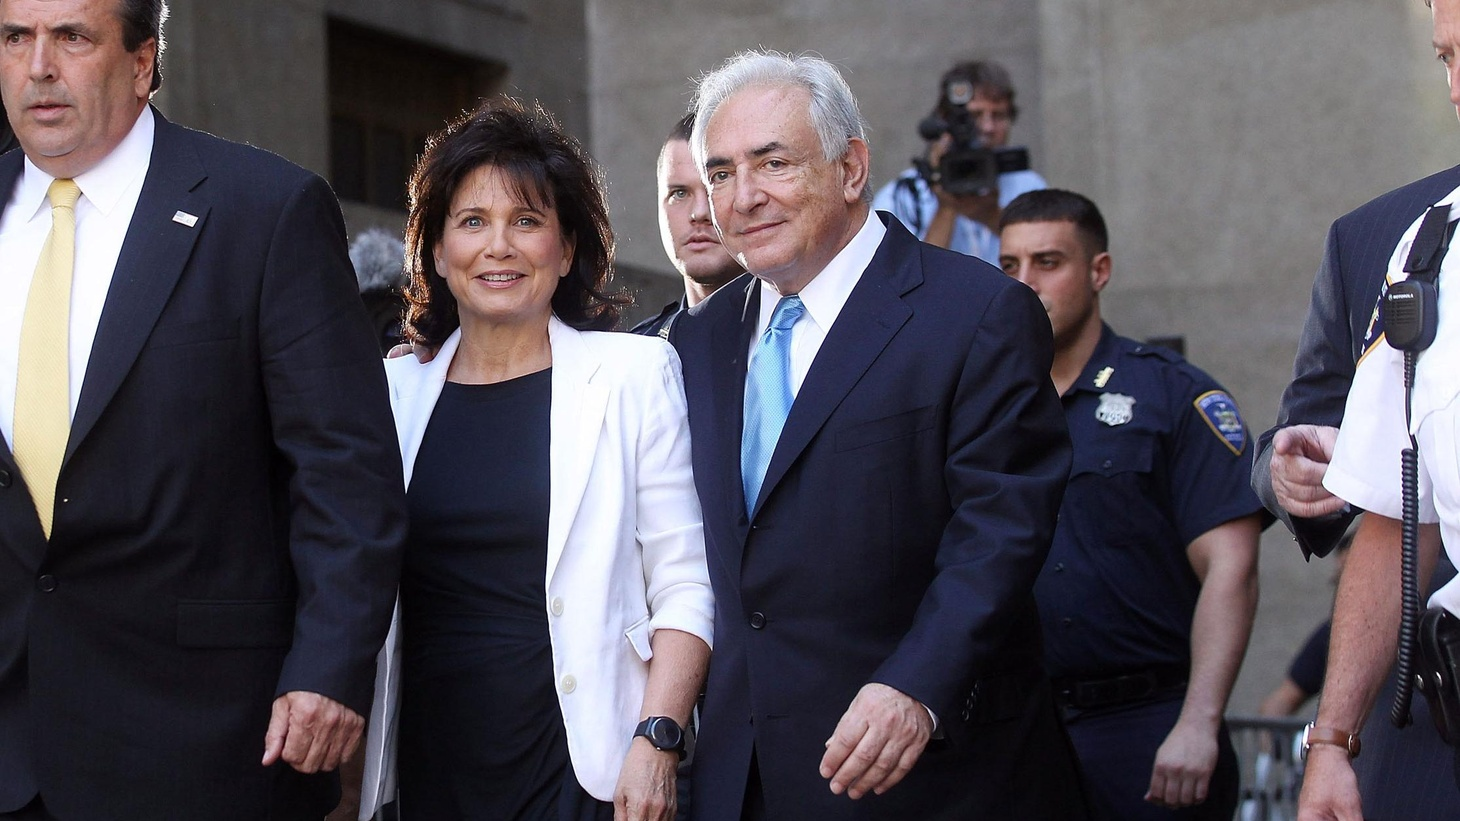 Today, the sexual assault case against former IMF head Strauss-Kahn, President Obama's news conference, Bachmann's presidential campaign, and gay marriage in NY.